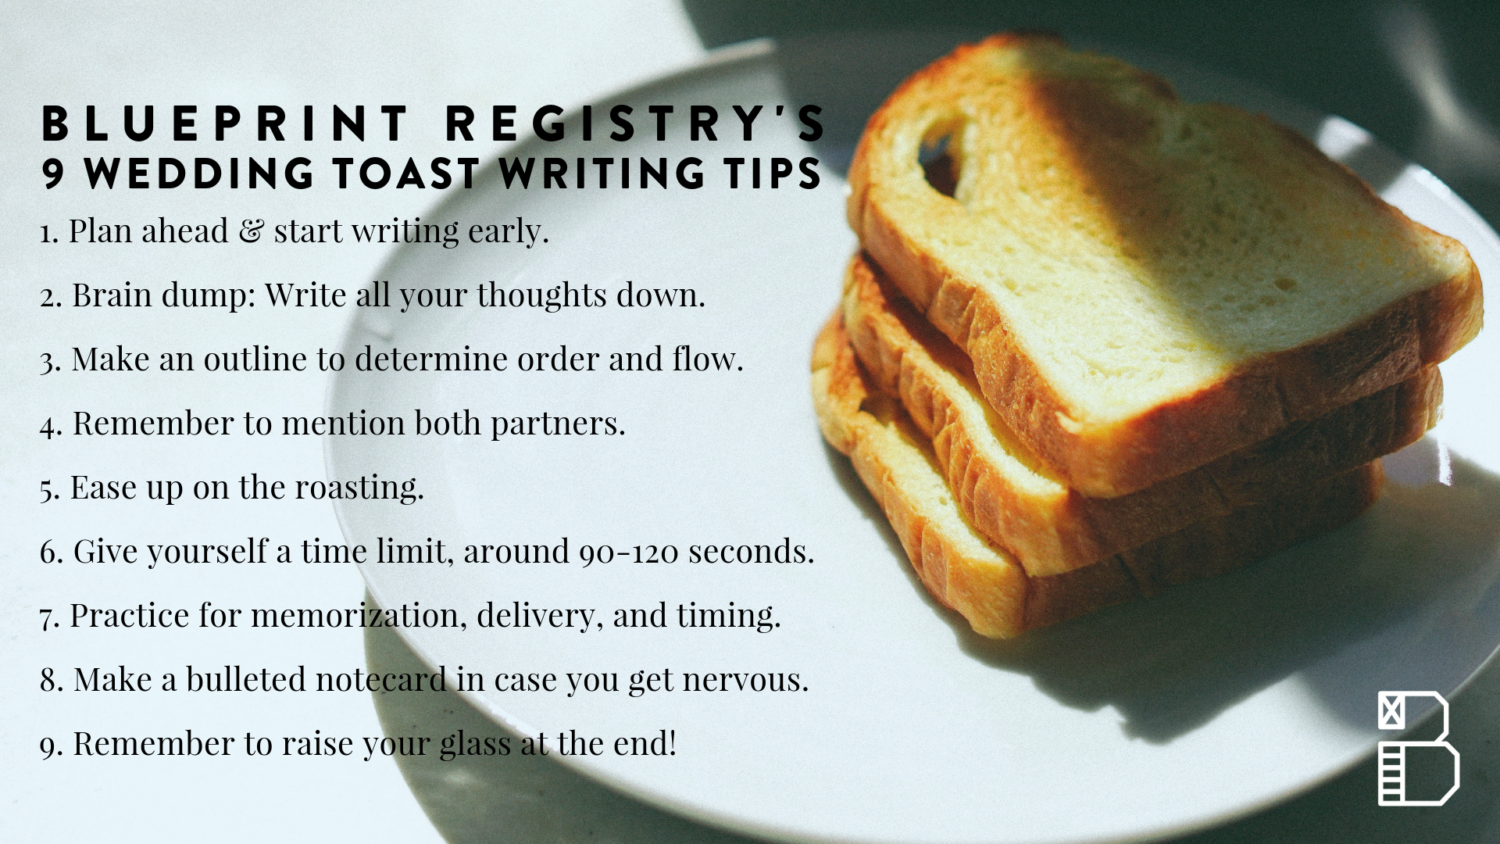 blueprint's tips for wedding toast writing